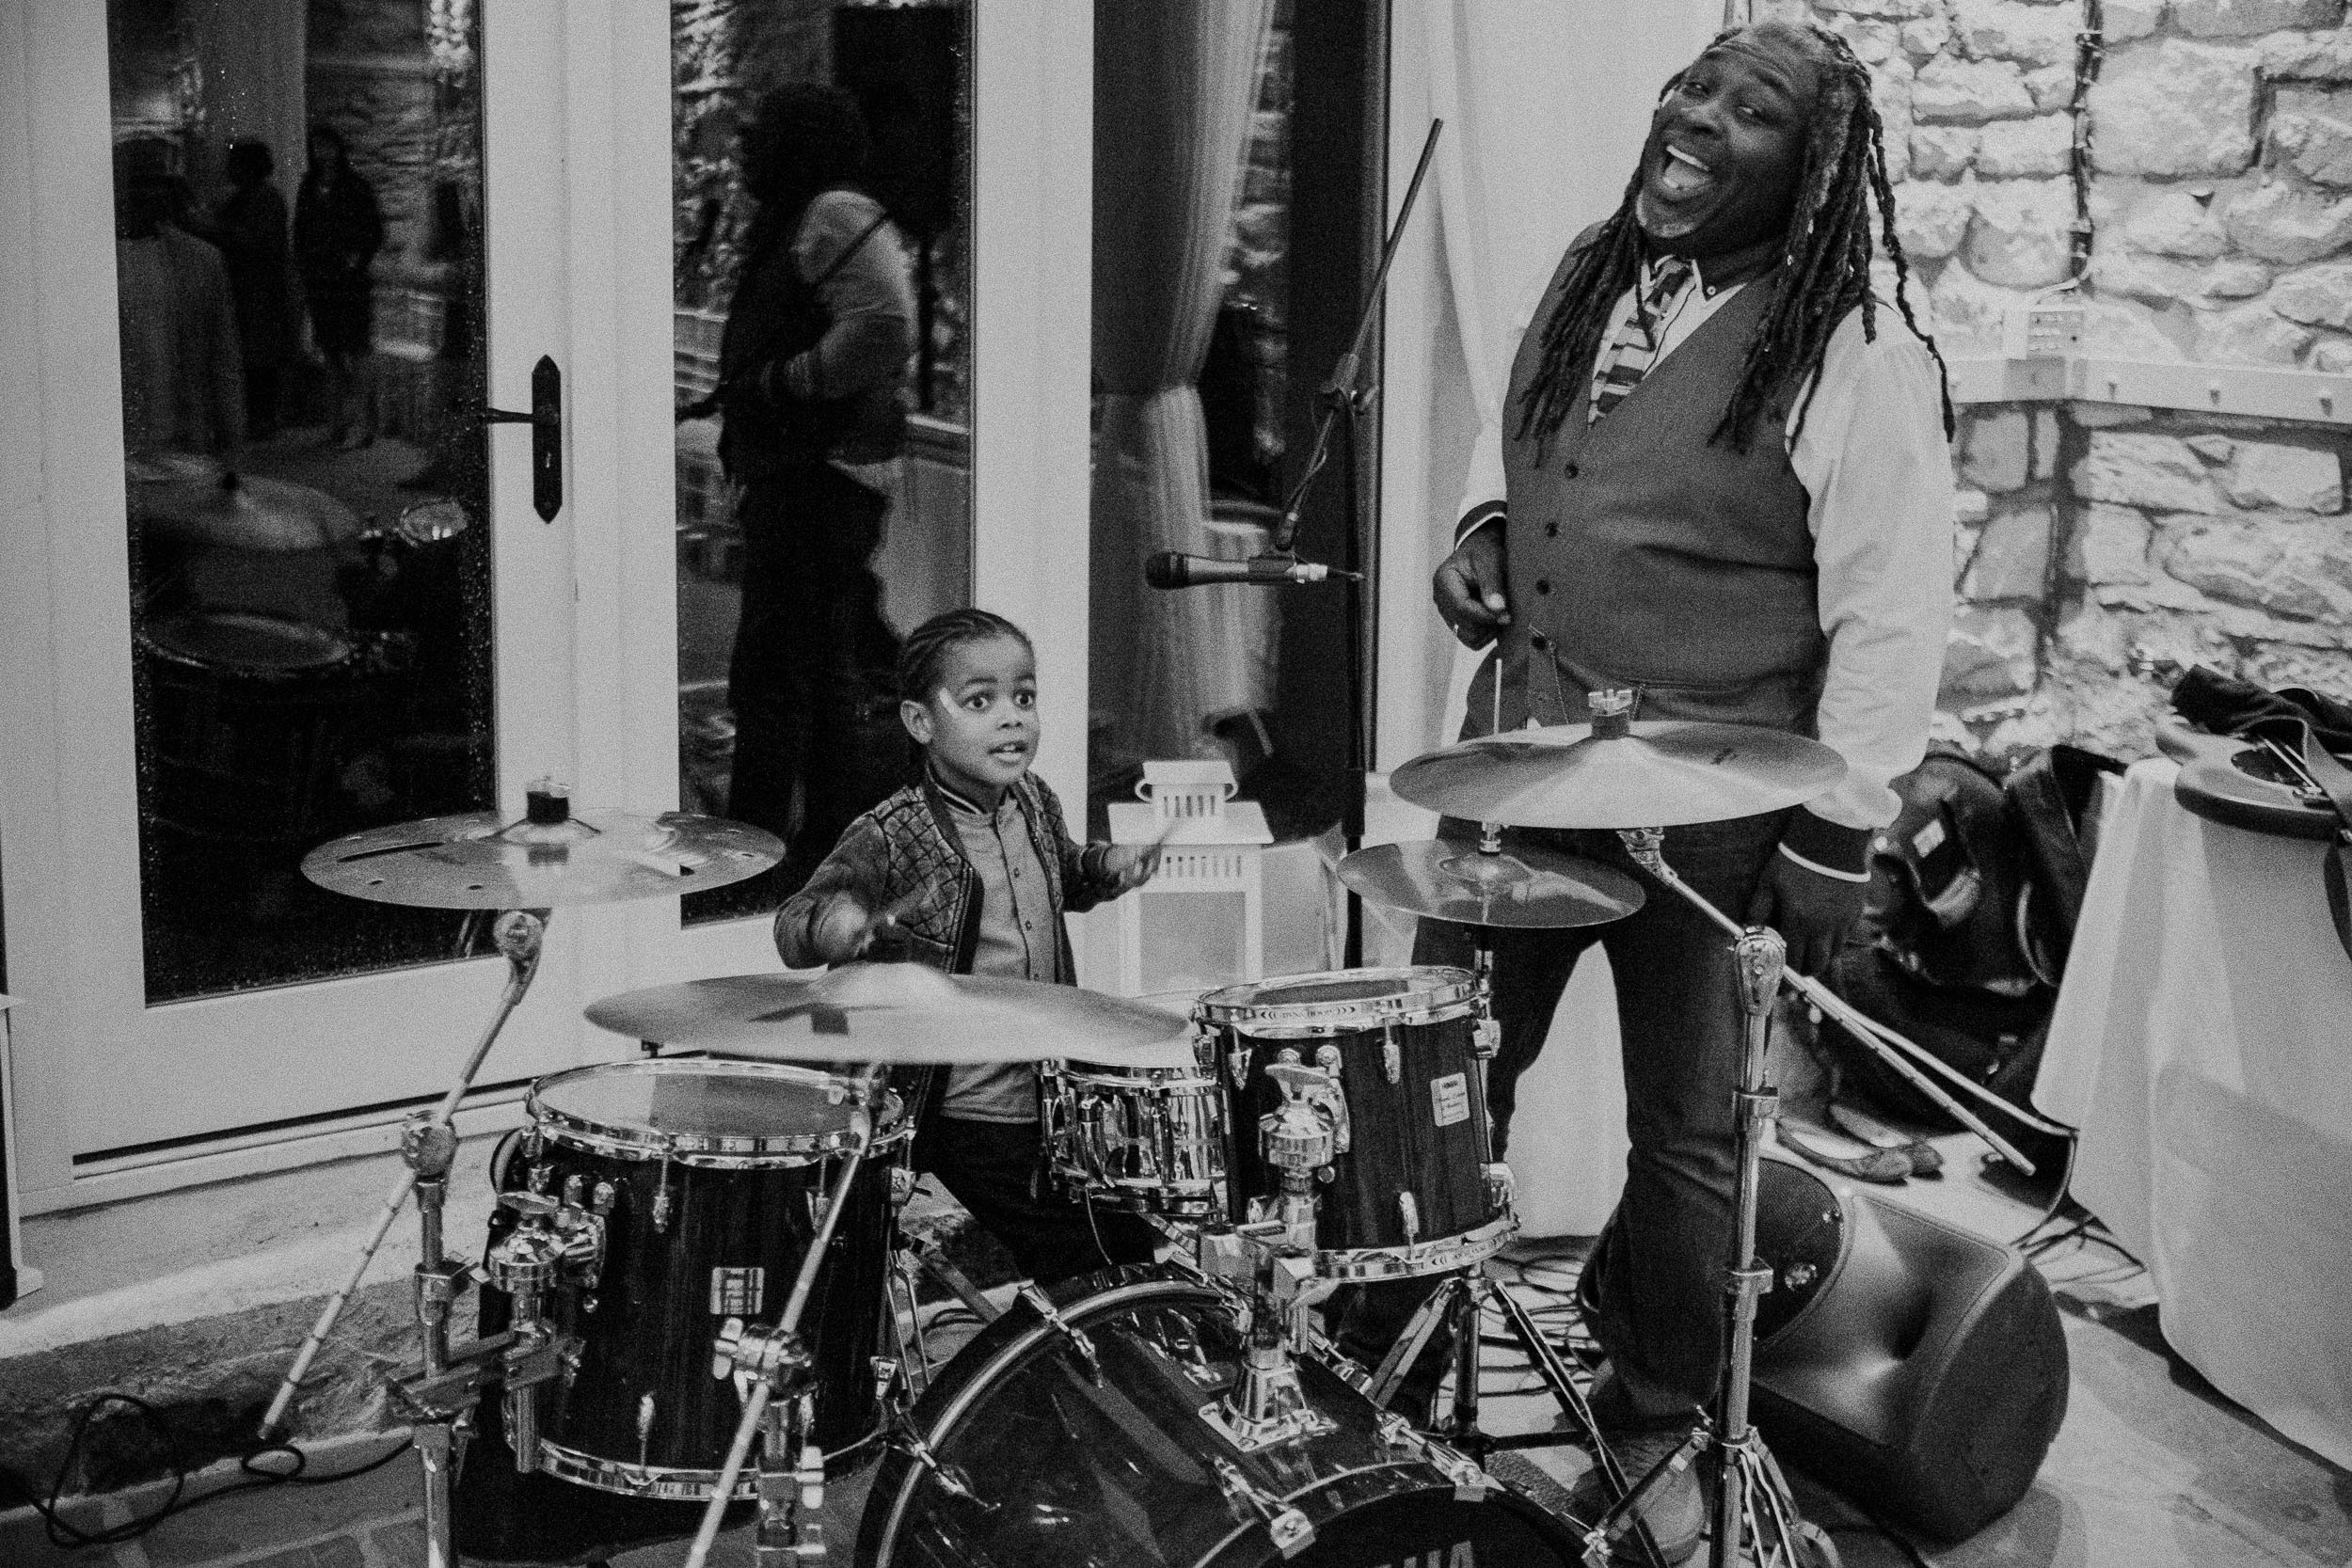 Black and white photo of young wedding guest drumming while man with dreadlocks watches